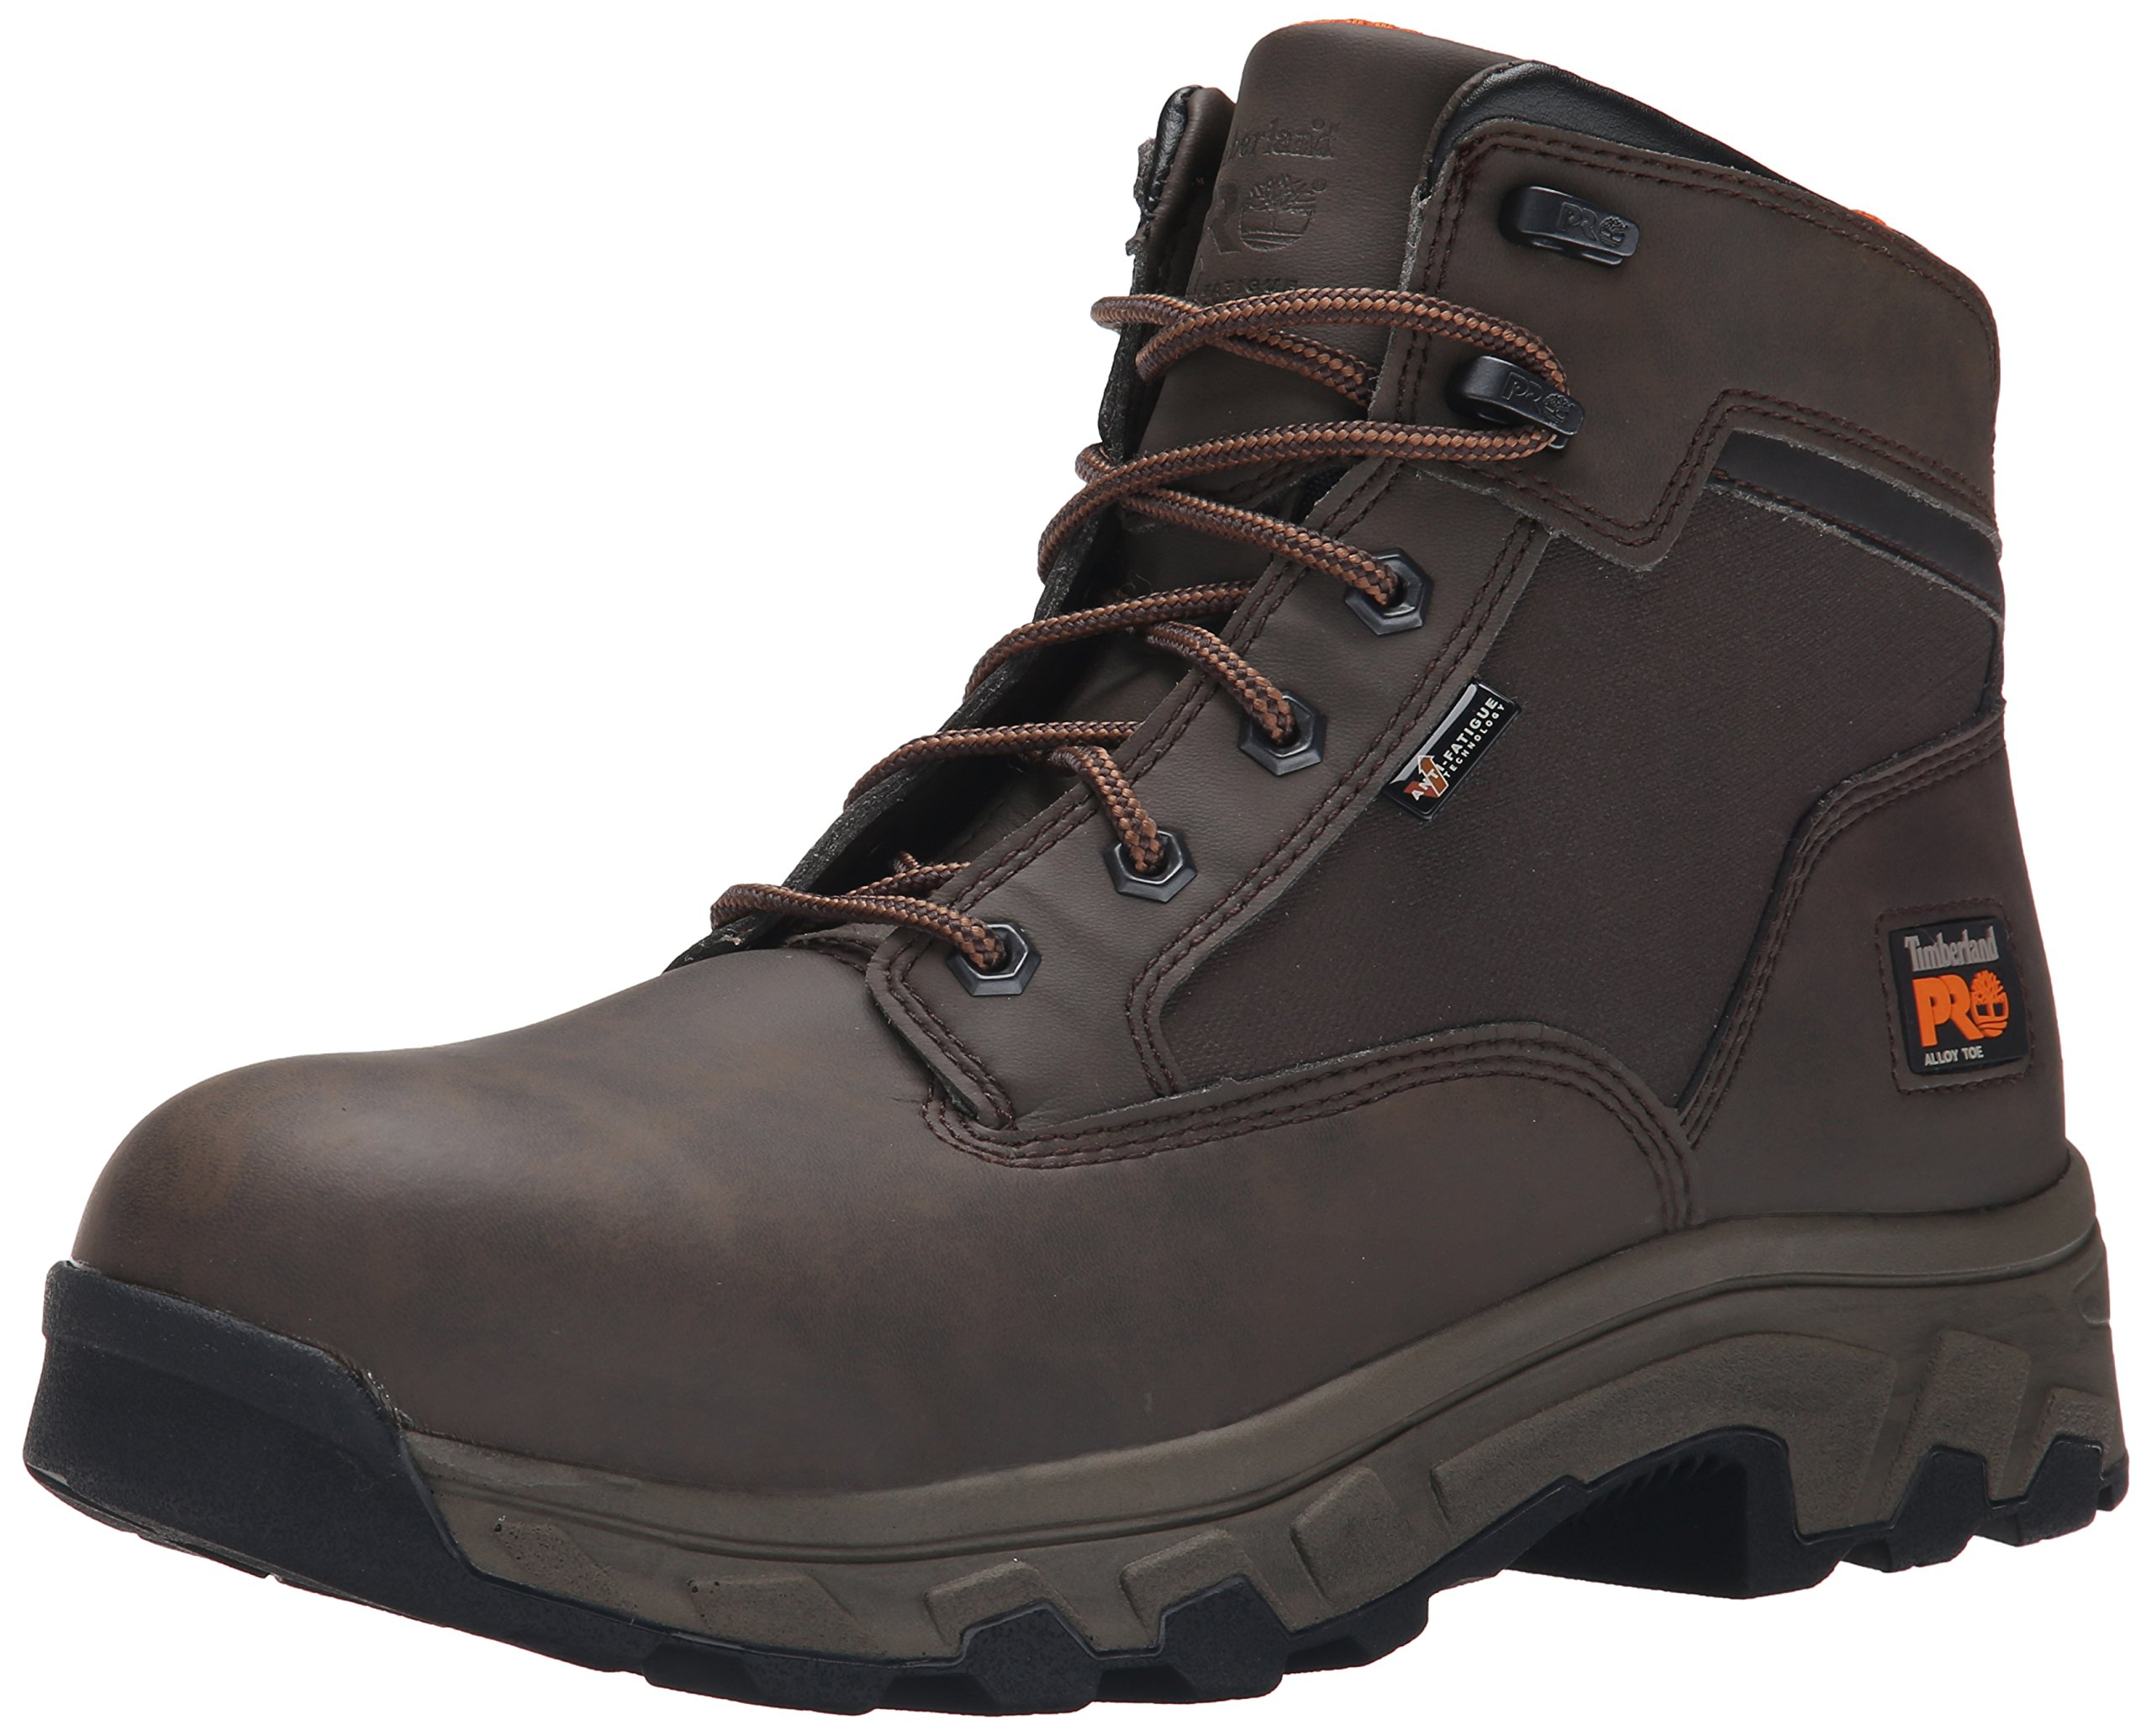 Timberland PRO Men's 6 Inch Linden Alloy Toe Work Boot, Brown clarino Microfiber, 15 W US